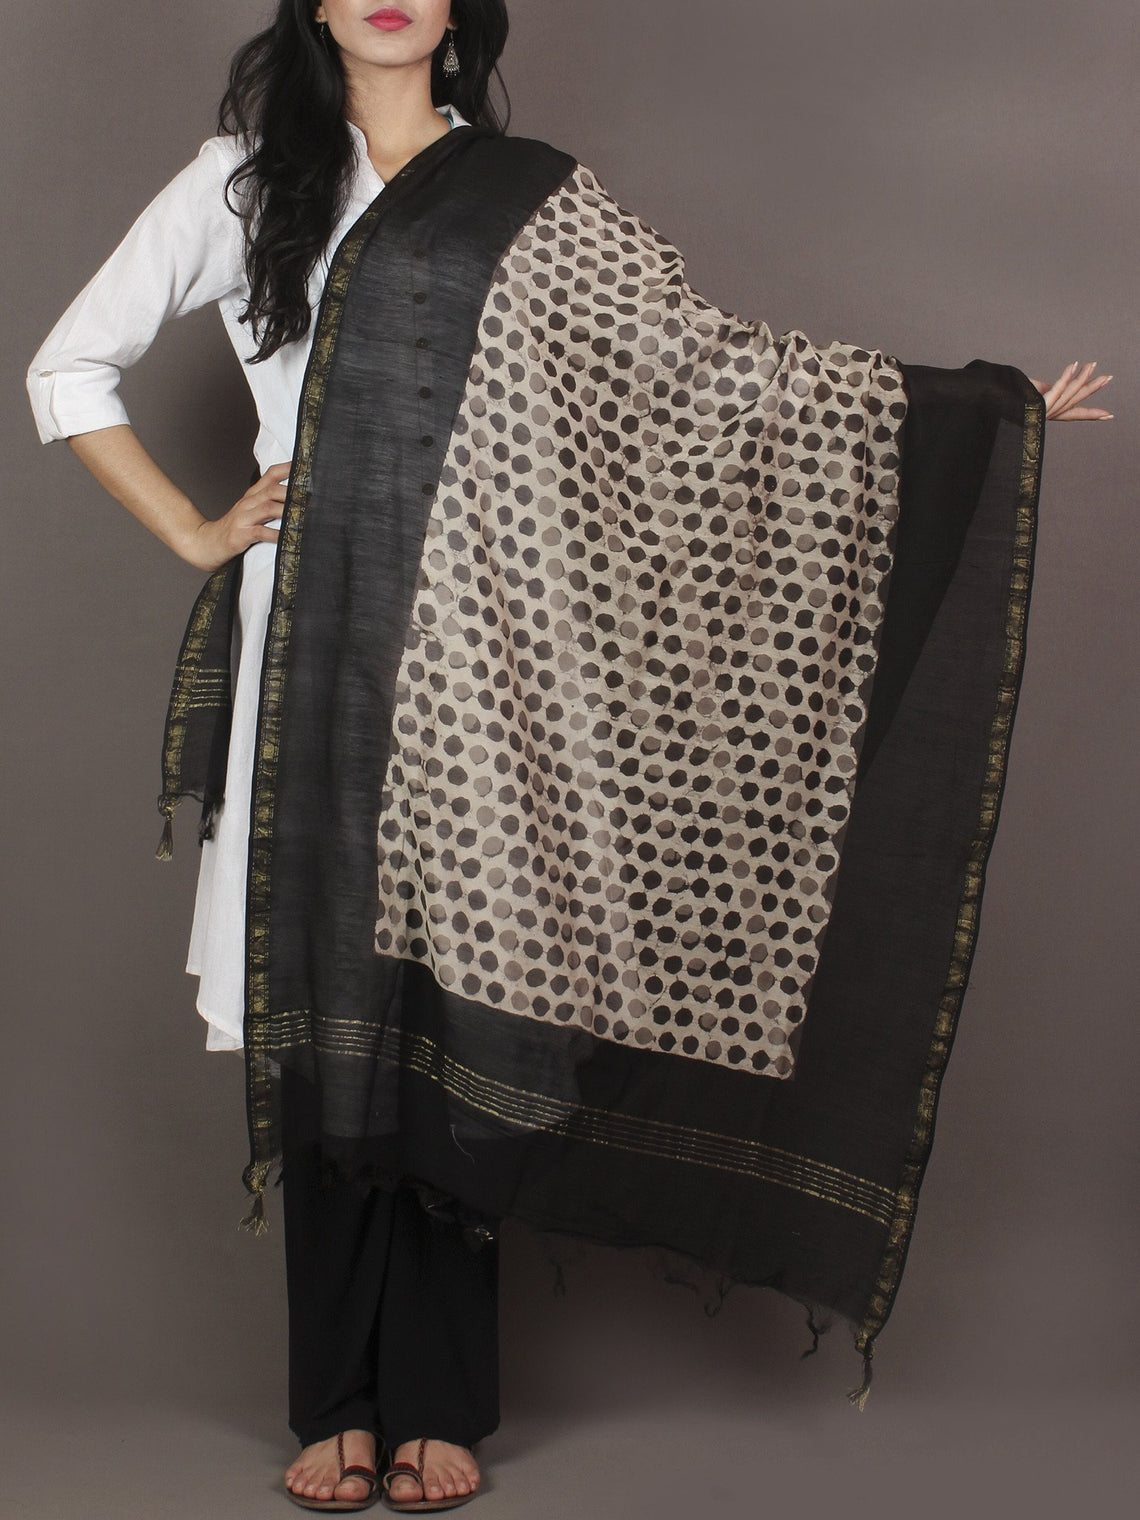 Brown Beige Black Chanderi Hand Black Printed Dupatta - D04170111